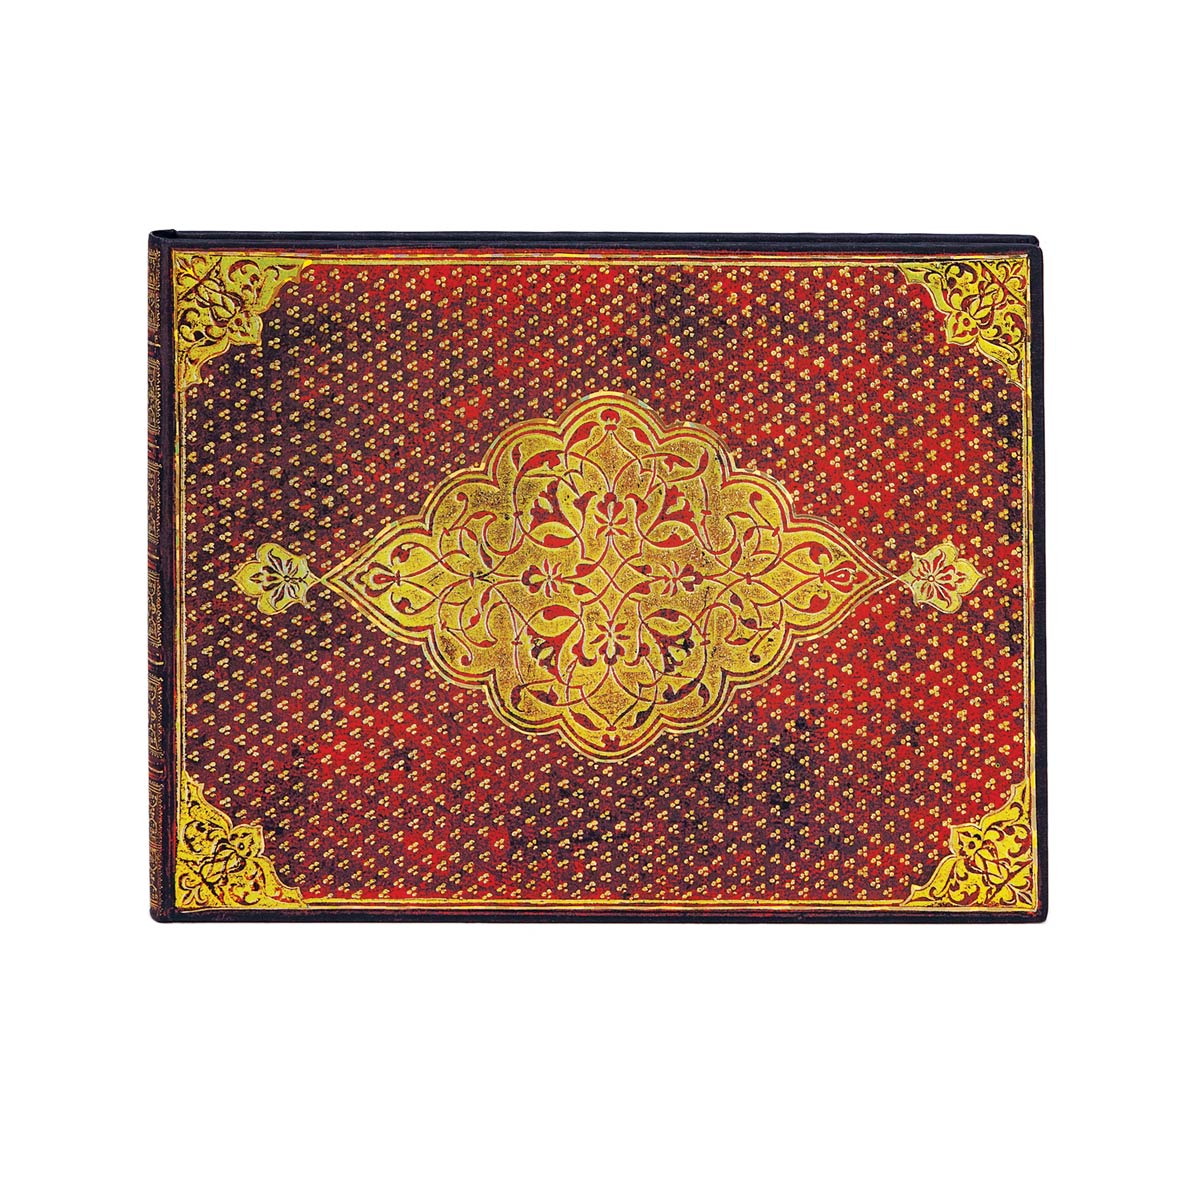 Paperblanks Golden Trefoil Guest Book 9 x 7 Inch